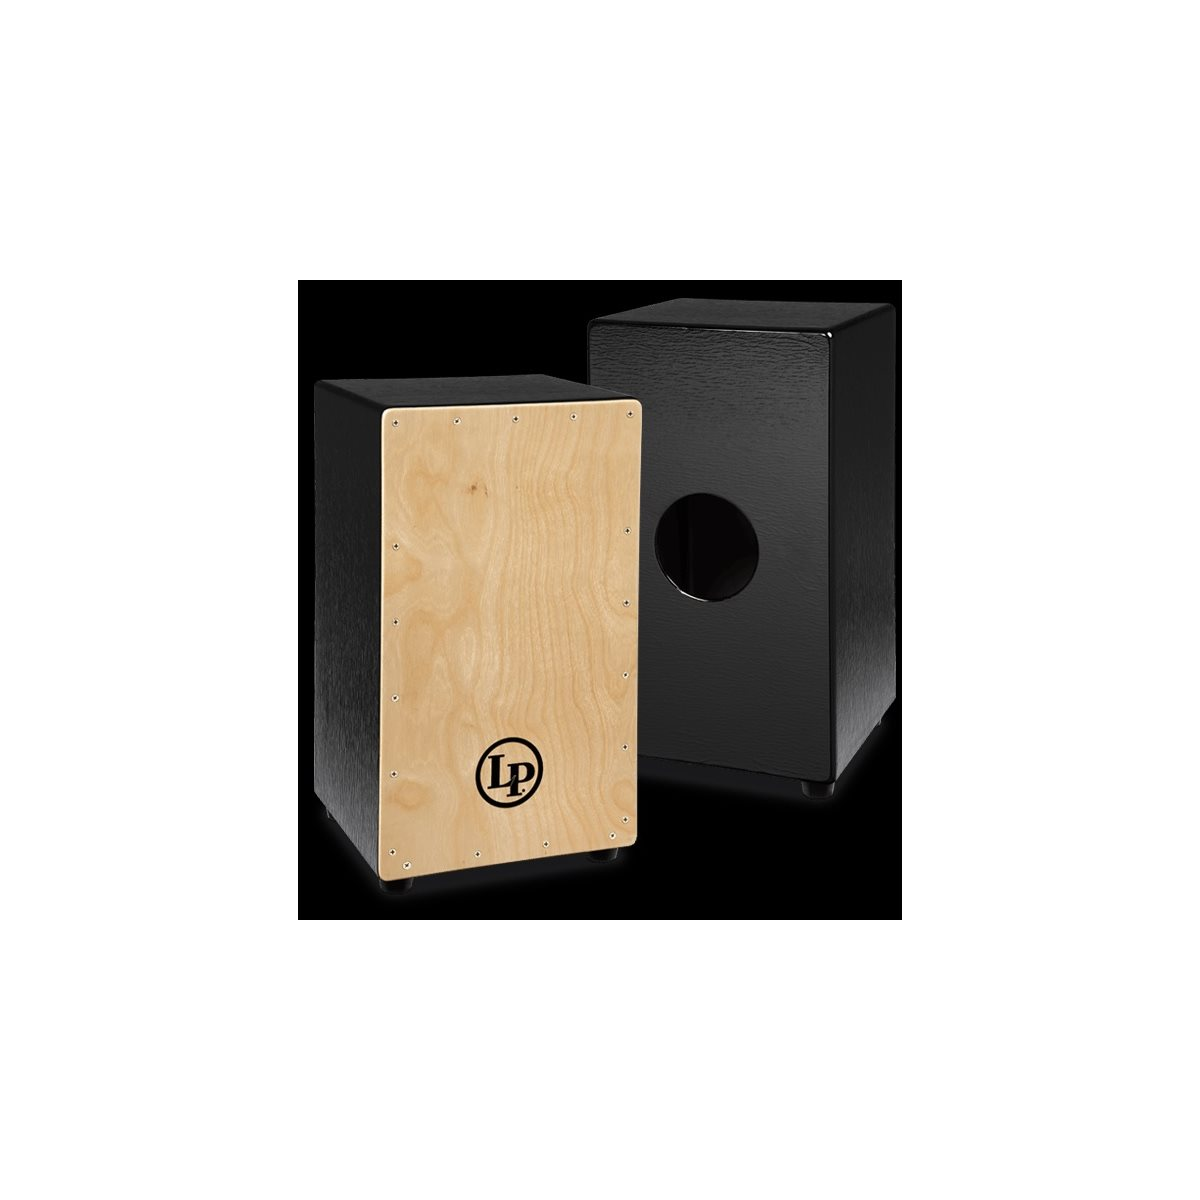 LP - LP1428NYN - BLACK BOX WIRE CAJON WITH NATURAL FACEPLATE